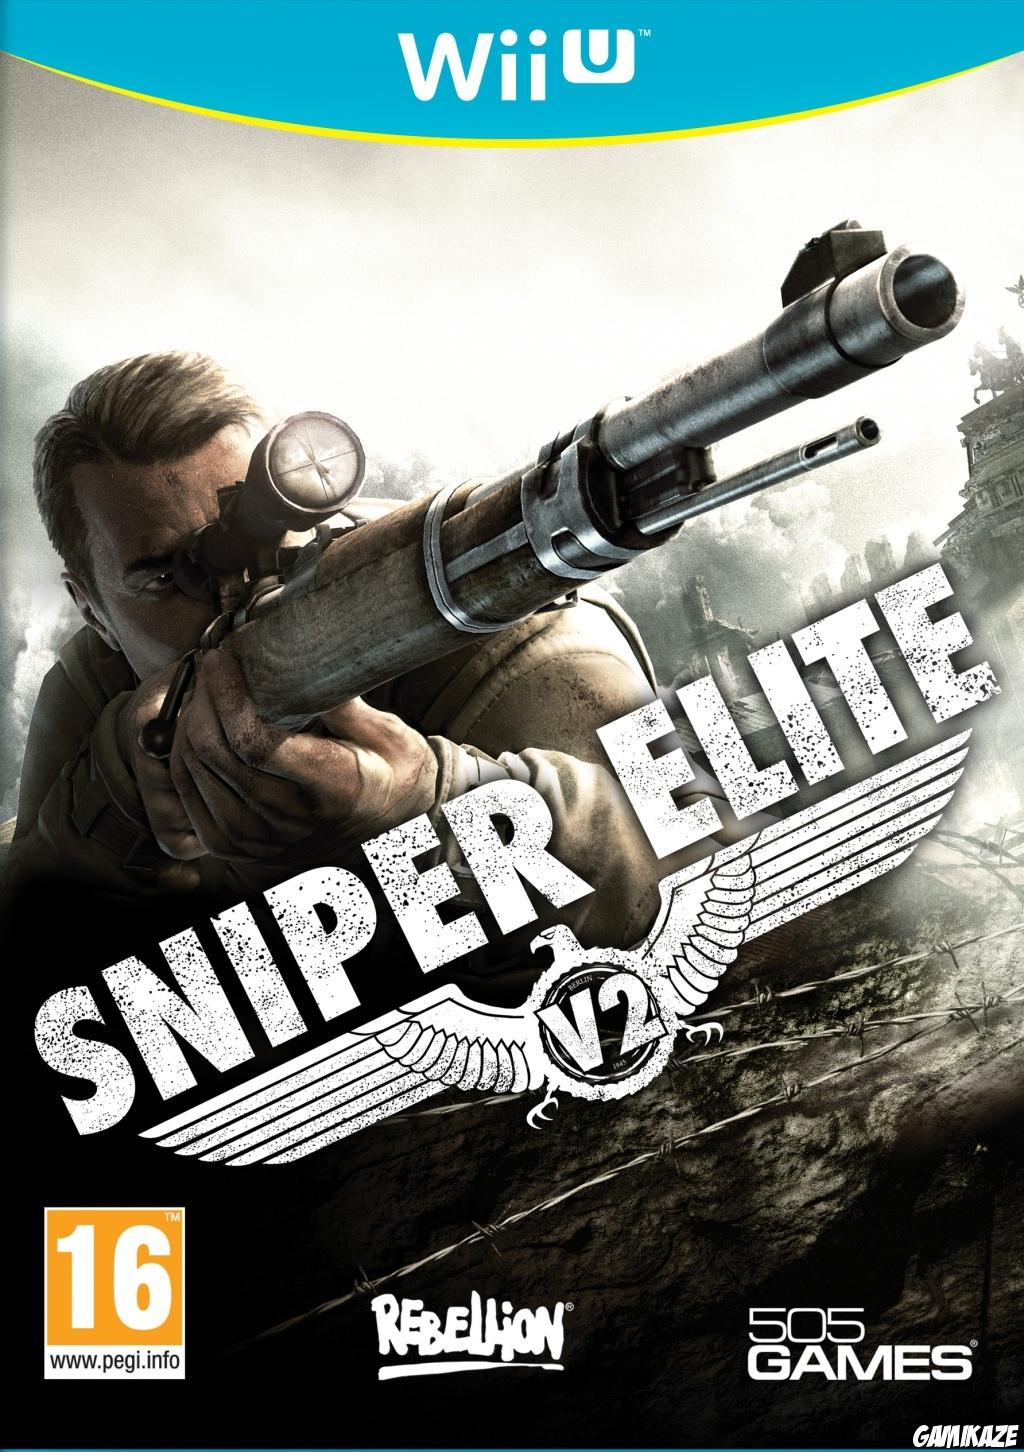 cover Sniper Elite V2 wiiu